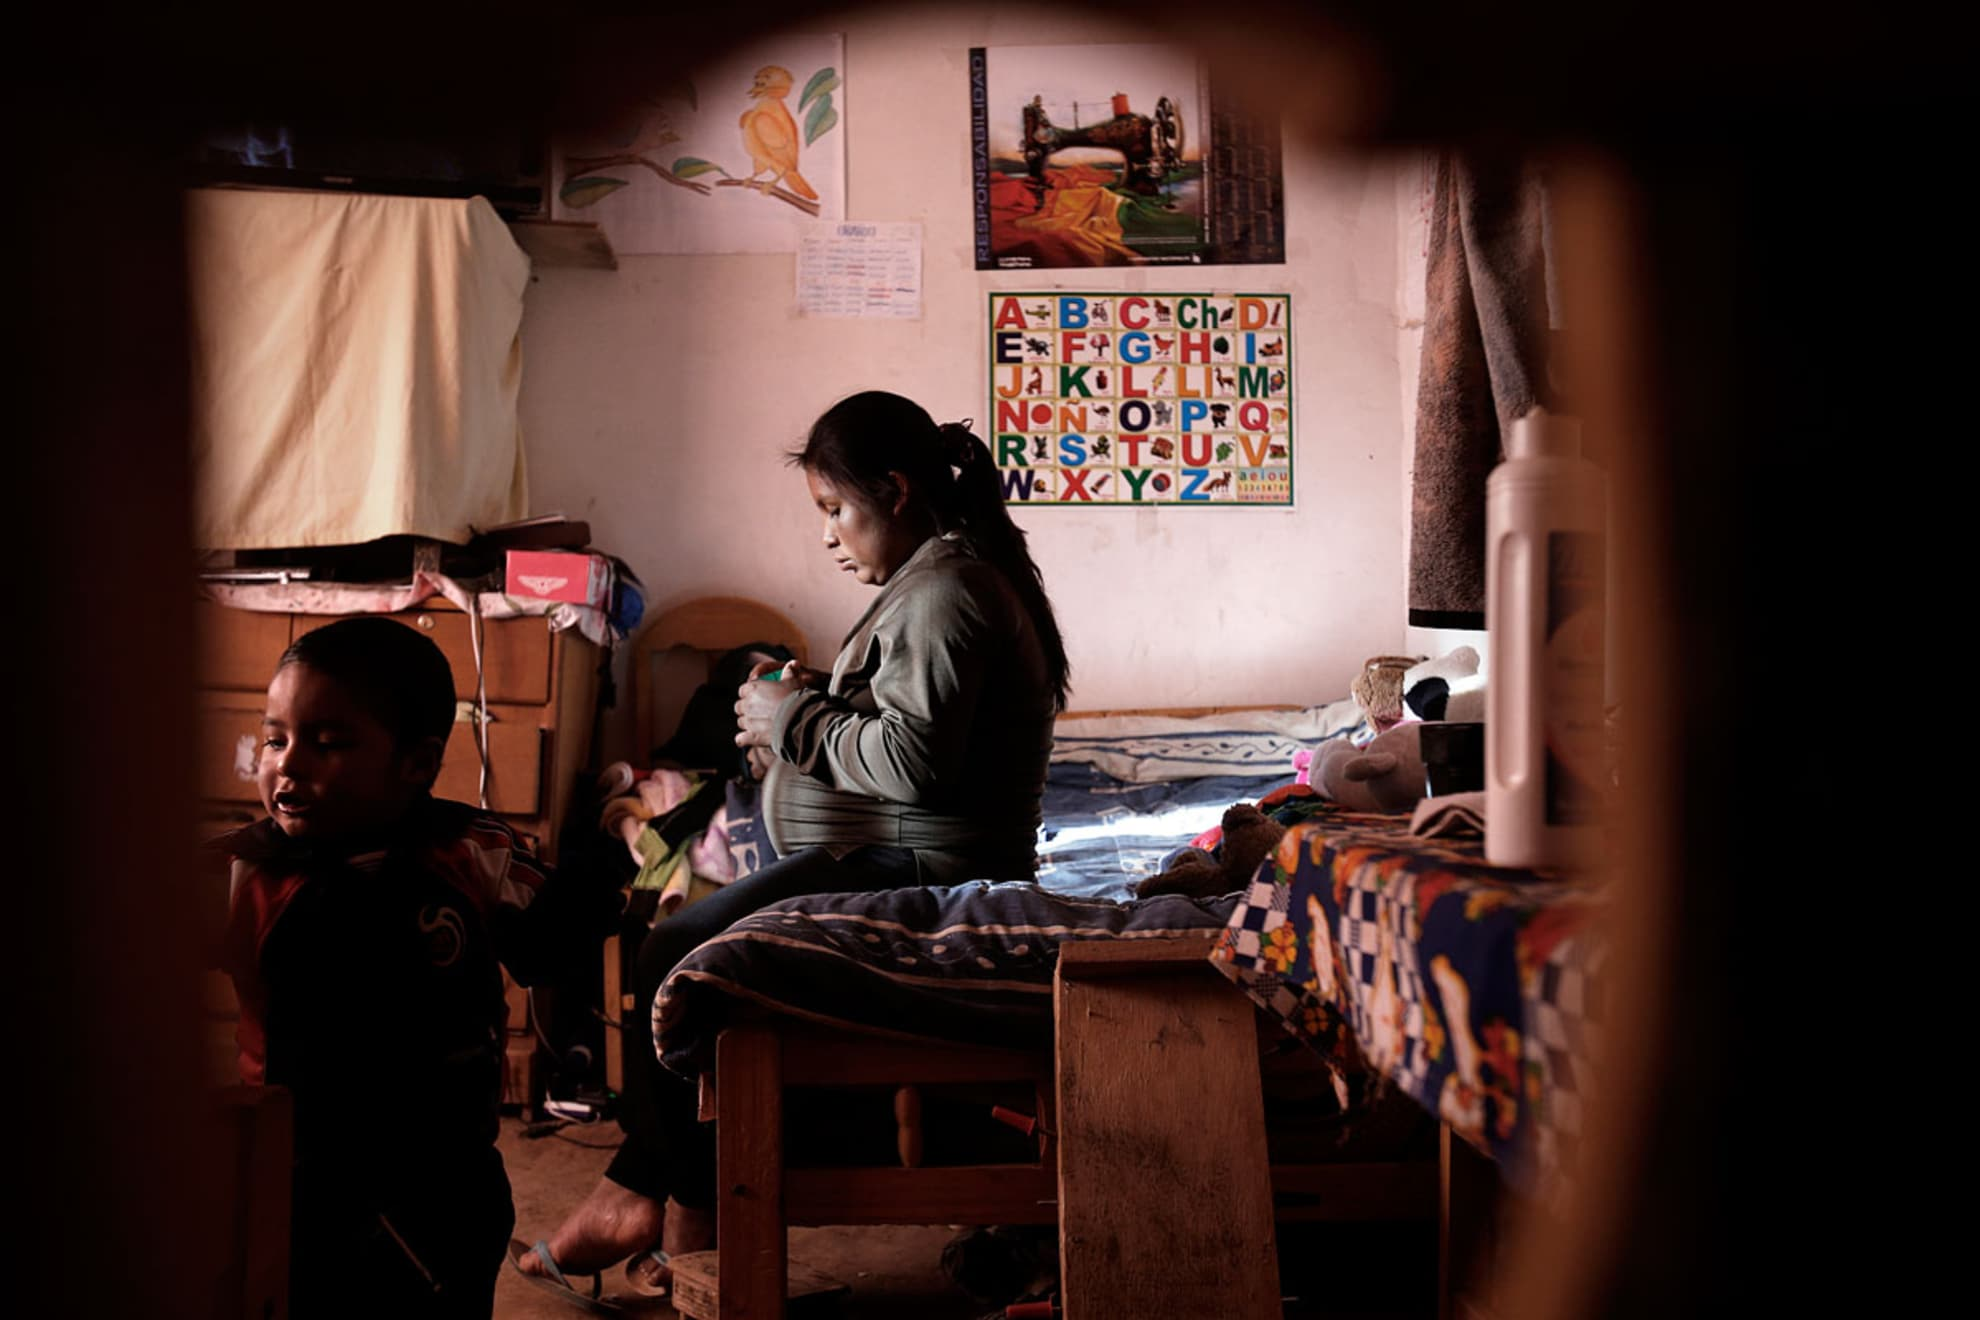 Lidia Mamani Lima, 40, is assisted by midwife Josefa Wanka Ramirez in the cultural adaptation room of the Patacamaya hospital, a few insantes before giving birth.